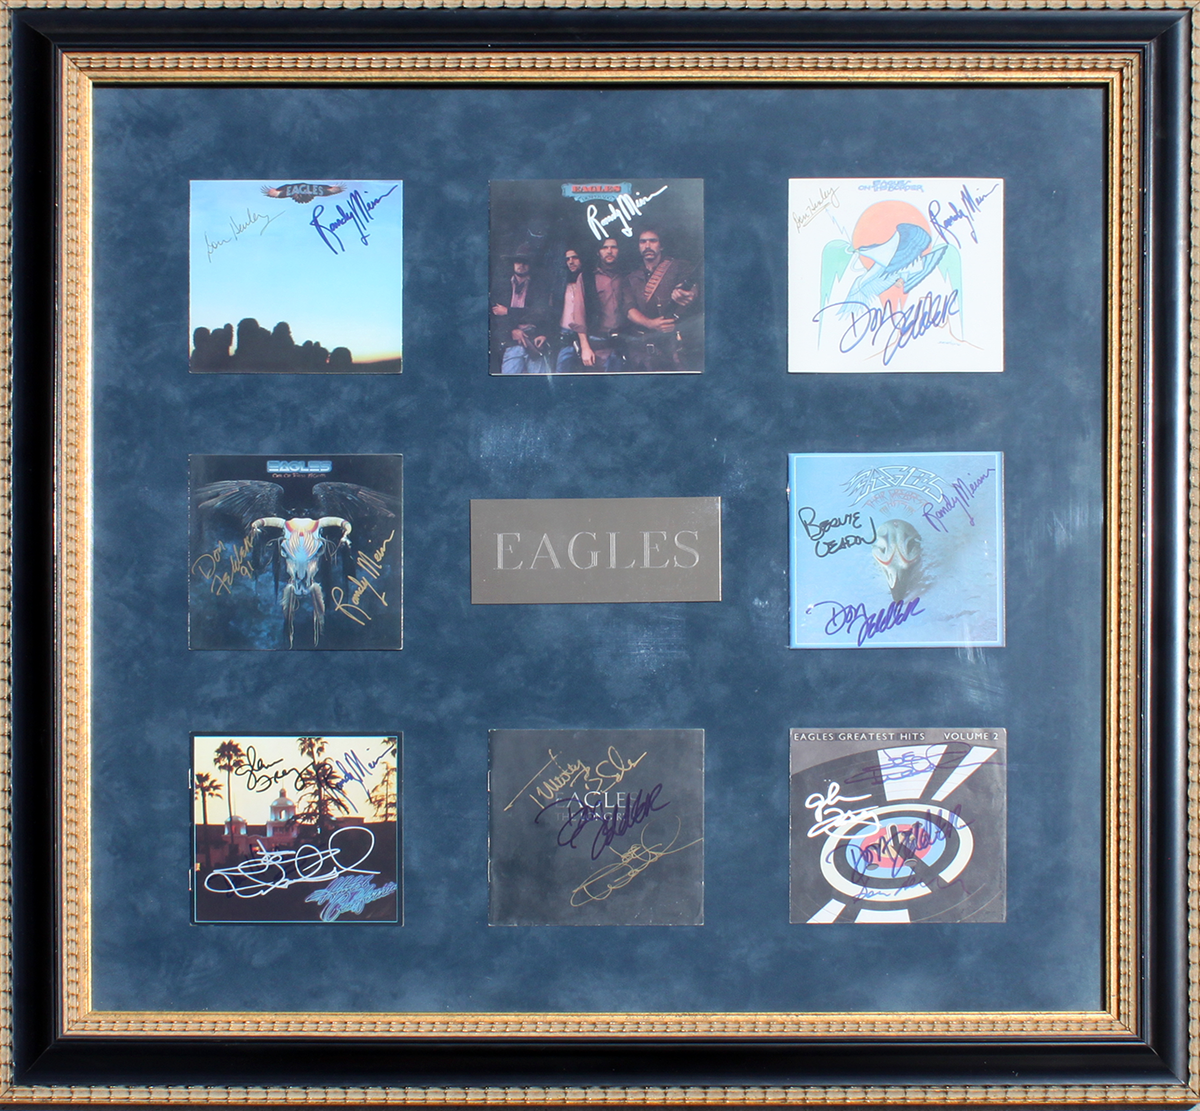 Eagles - 8 CDs Framed